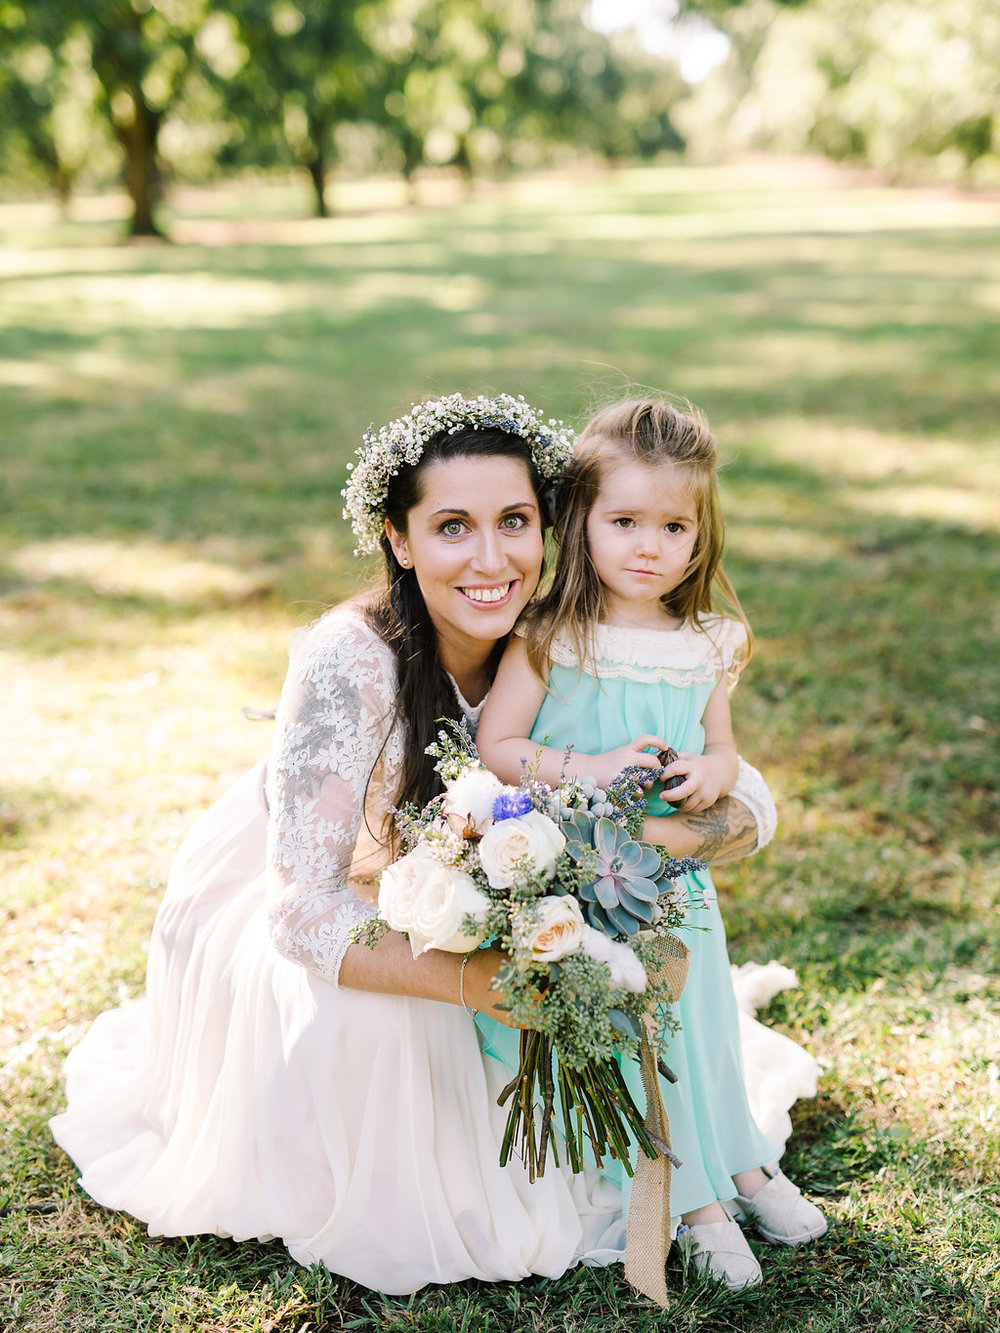 rach-loves-troy-photography-atlanta-wedding-pineola-farms-wedding-cat-wedding-rebecca-shoneveld-vivian-sage-ivory-and-beau-bridal-boutique-savannah-wedding-dresses-savannah-bridal-boutique-savannah-bridal-gowns-savannah-florist-georgia-bridal-17.jpg